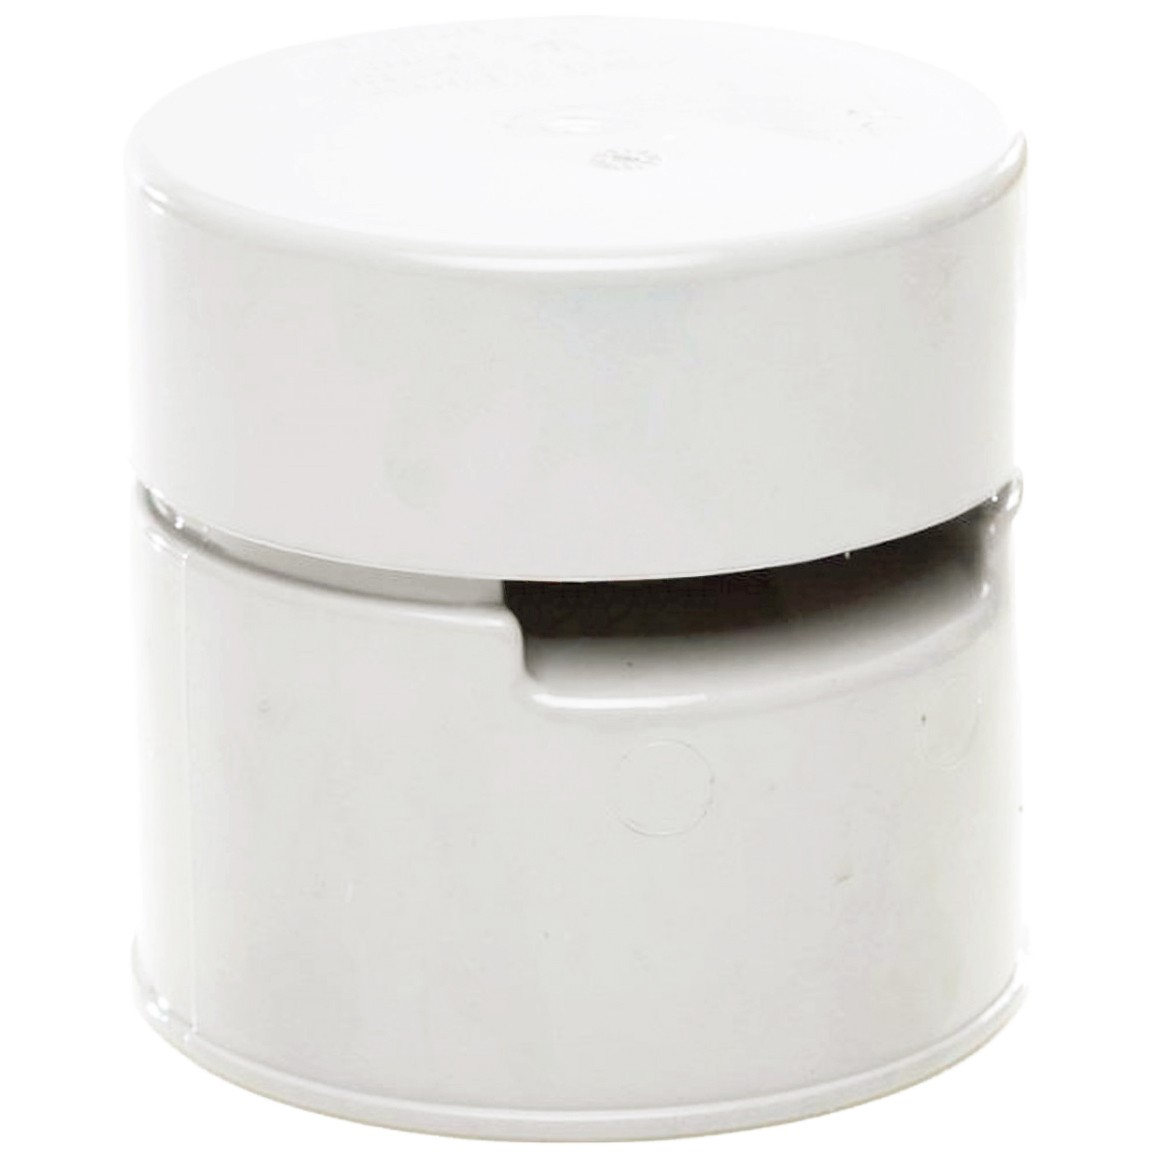 Polypipe 110mm Soil Solvent Air Admittance Valve - White